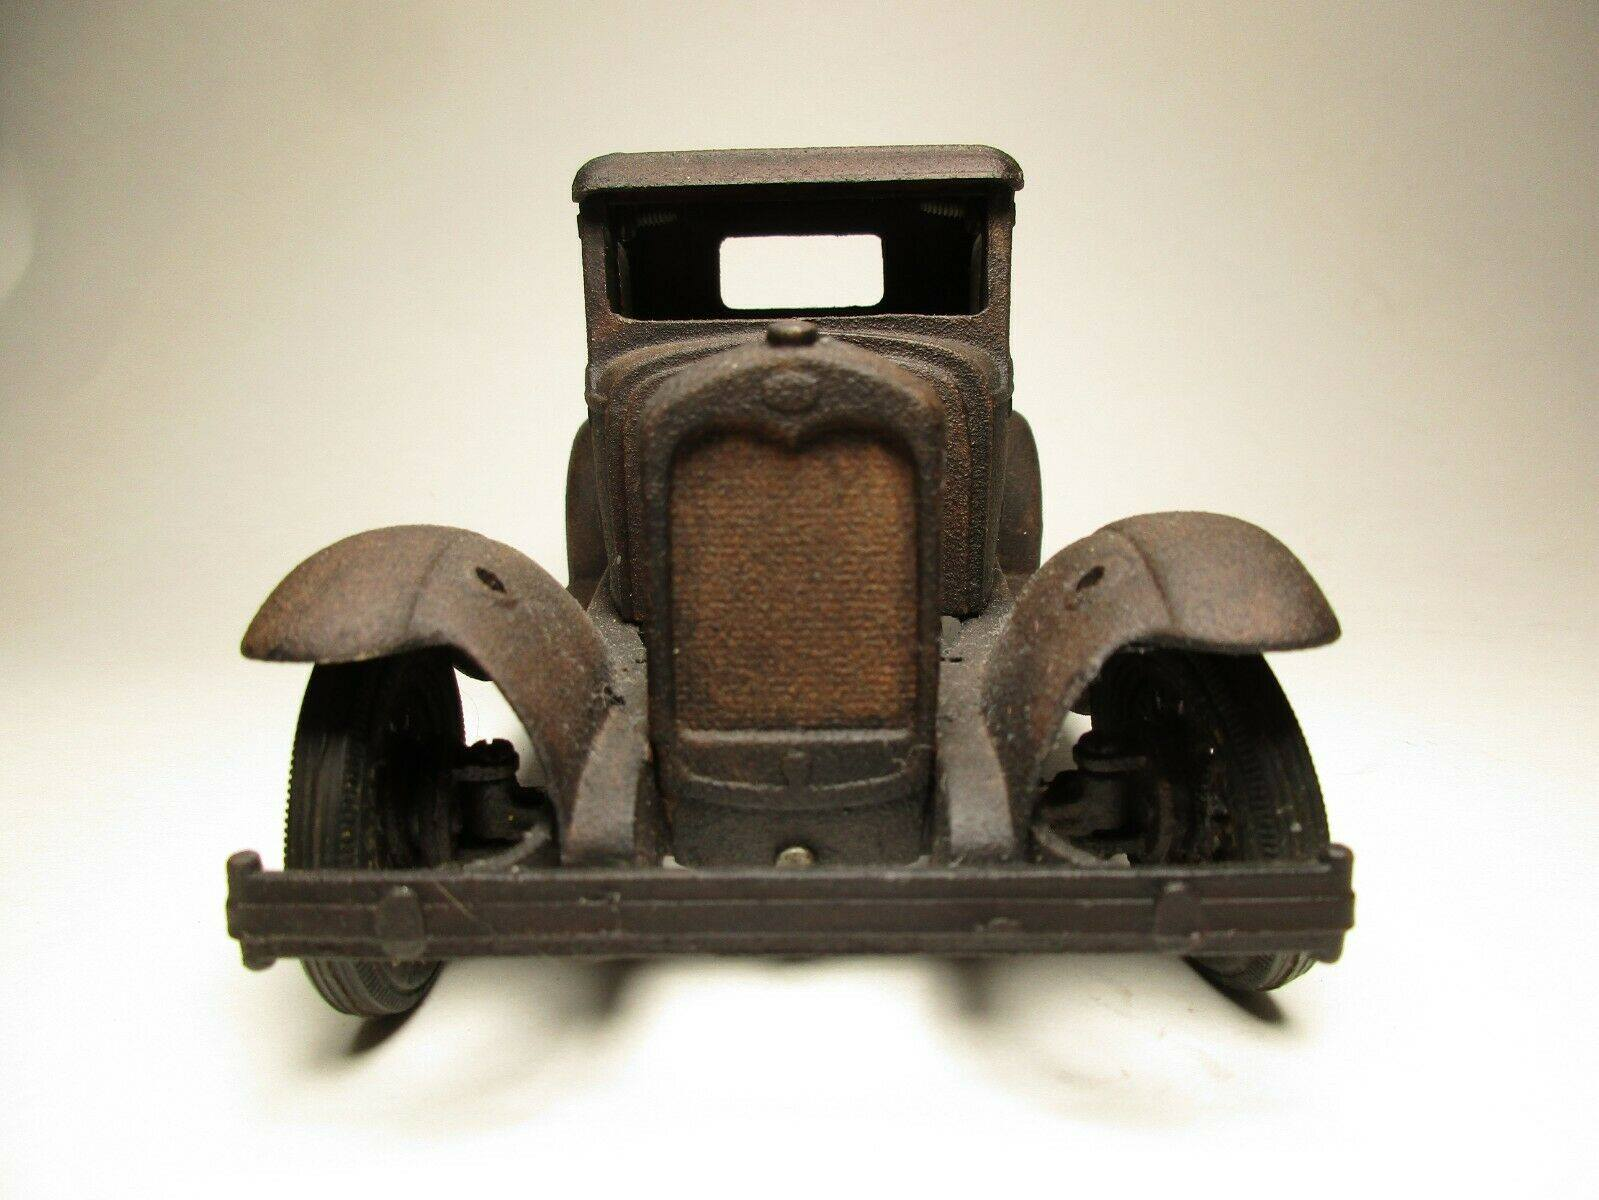 Vintage-Hubley-1932-Ford-Model-A-Coupe-and-Engine---Rusty-Weathered-Barn-Find-7